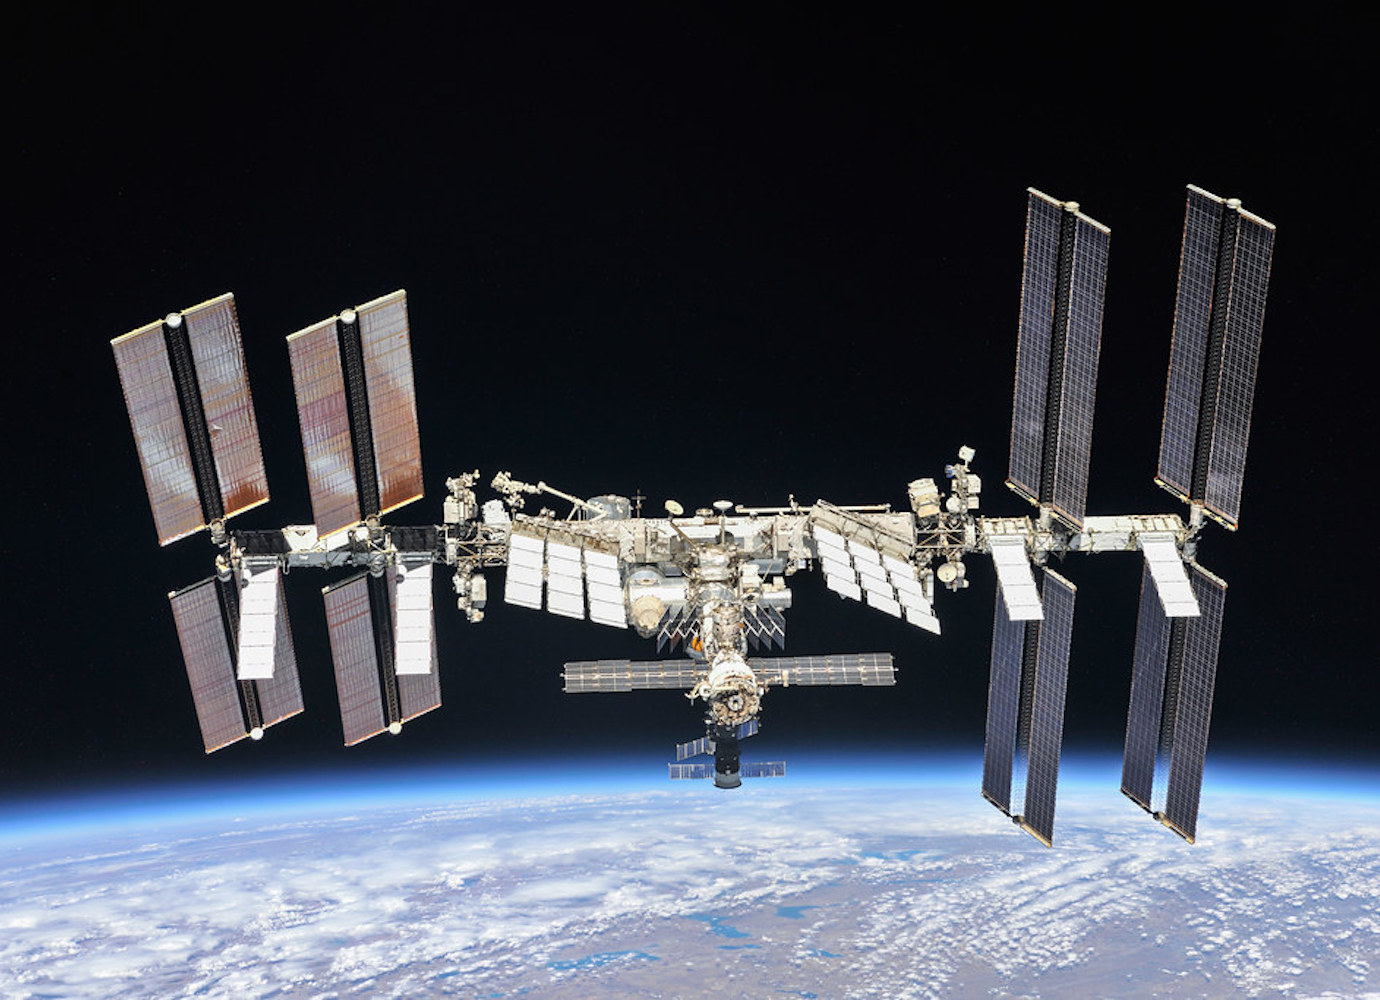 Russia announces plans to make the first film shot in space on the International Space Station